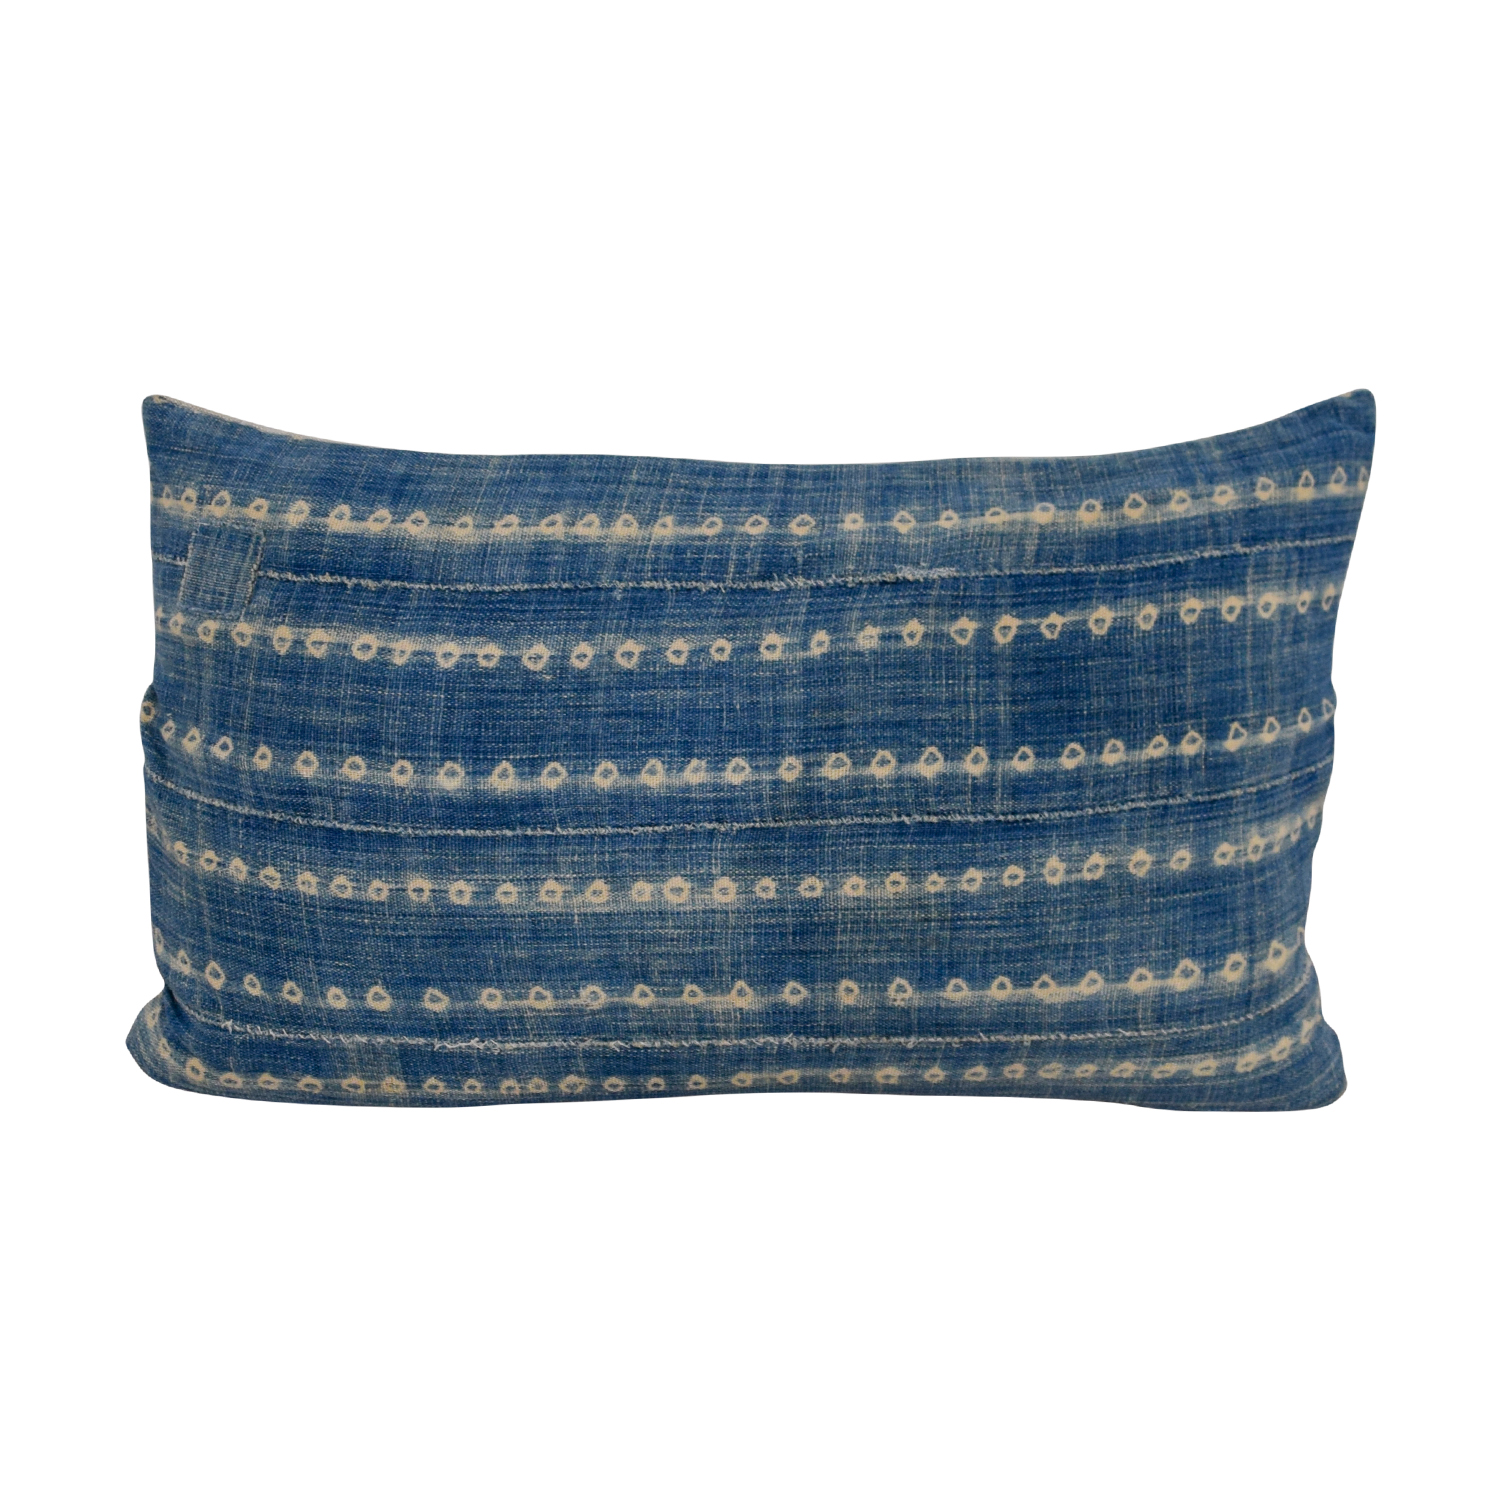 Etsy Etsy African Blue Mudcloth Toss Pillow price